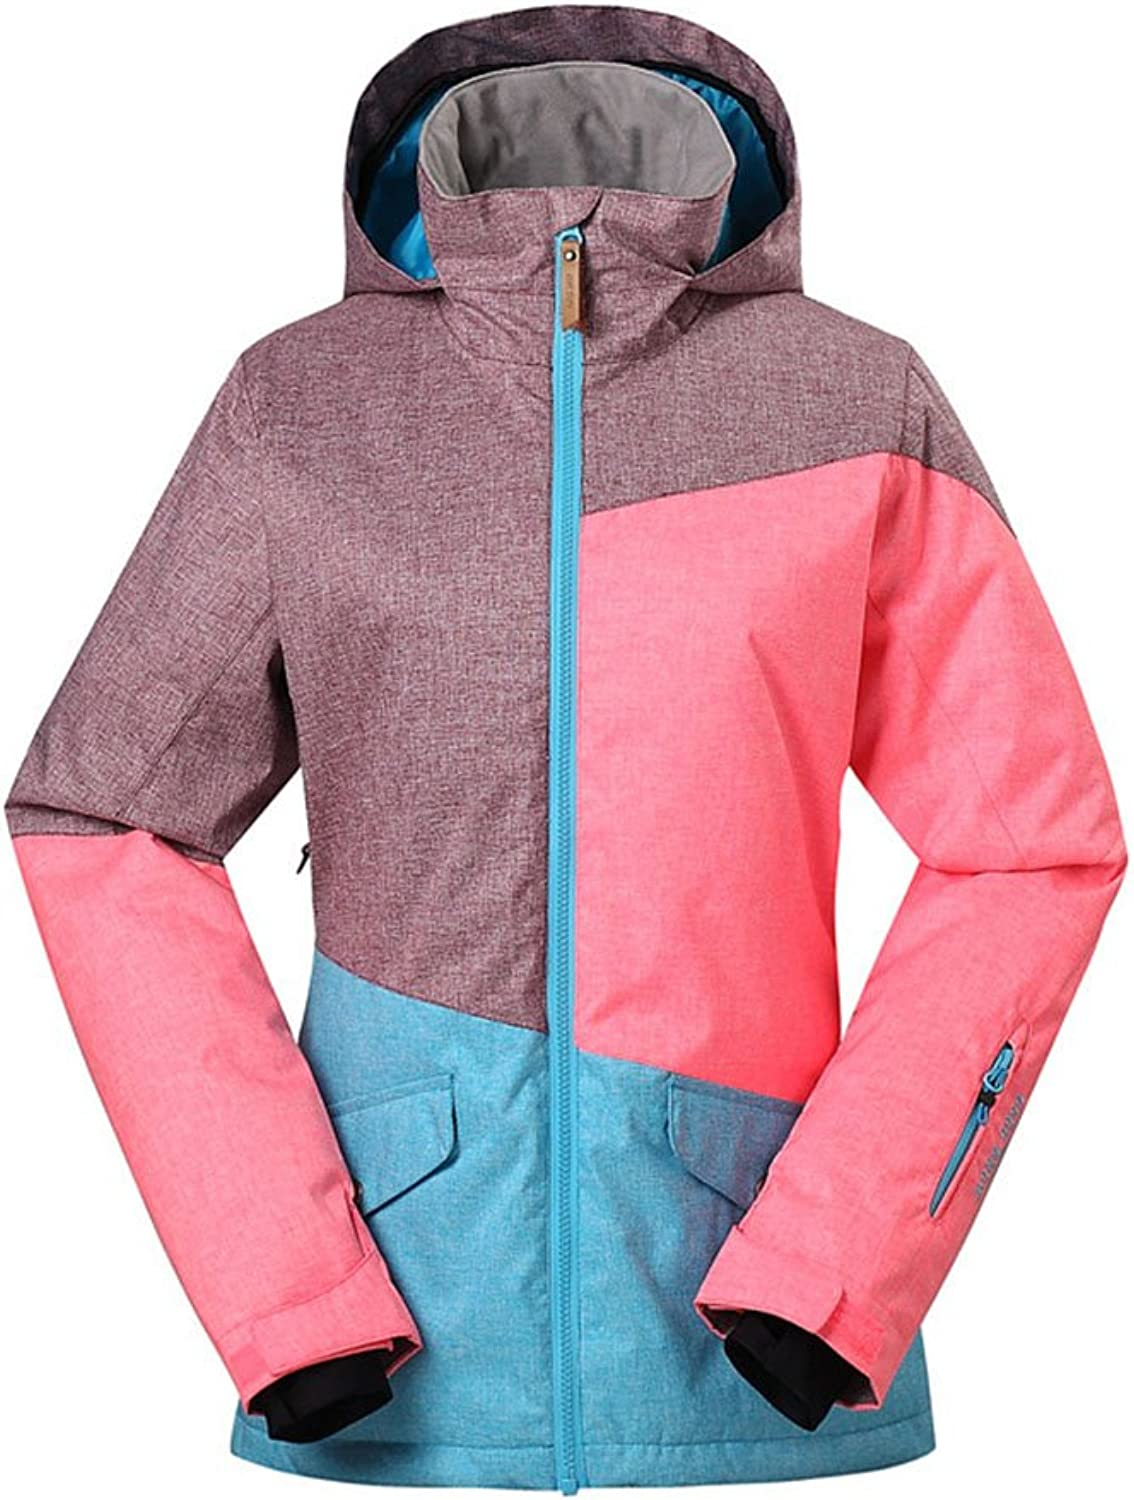 LiBridal Women's Multicolord Ski Suits,High Windproof Waterproof Technology Snow Jacket Coat